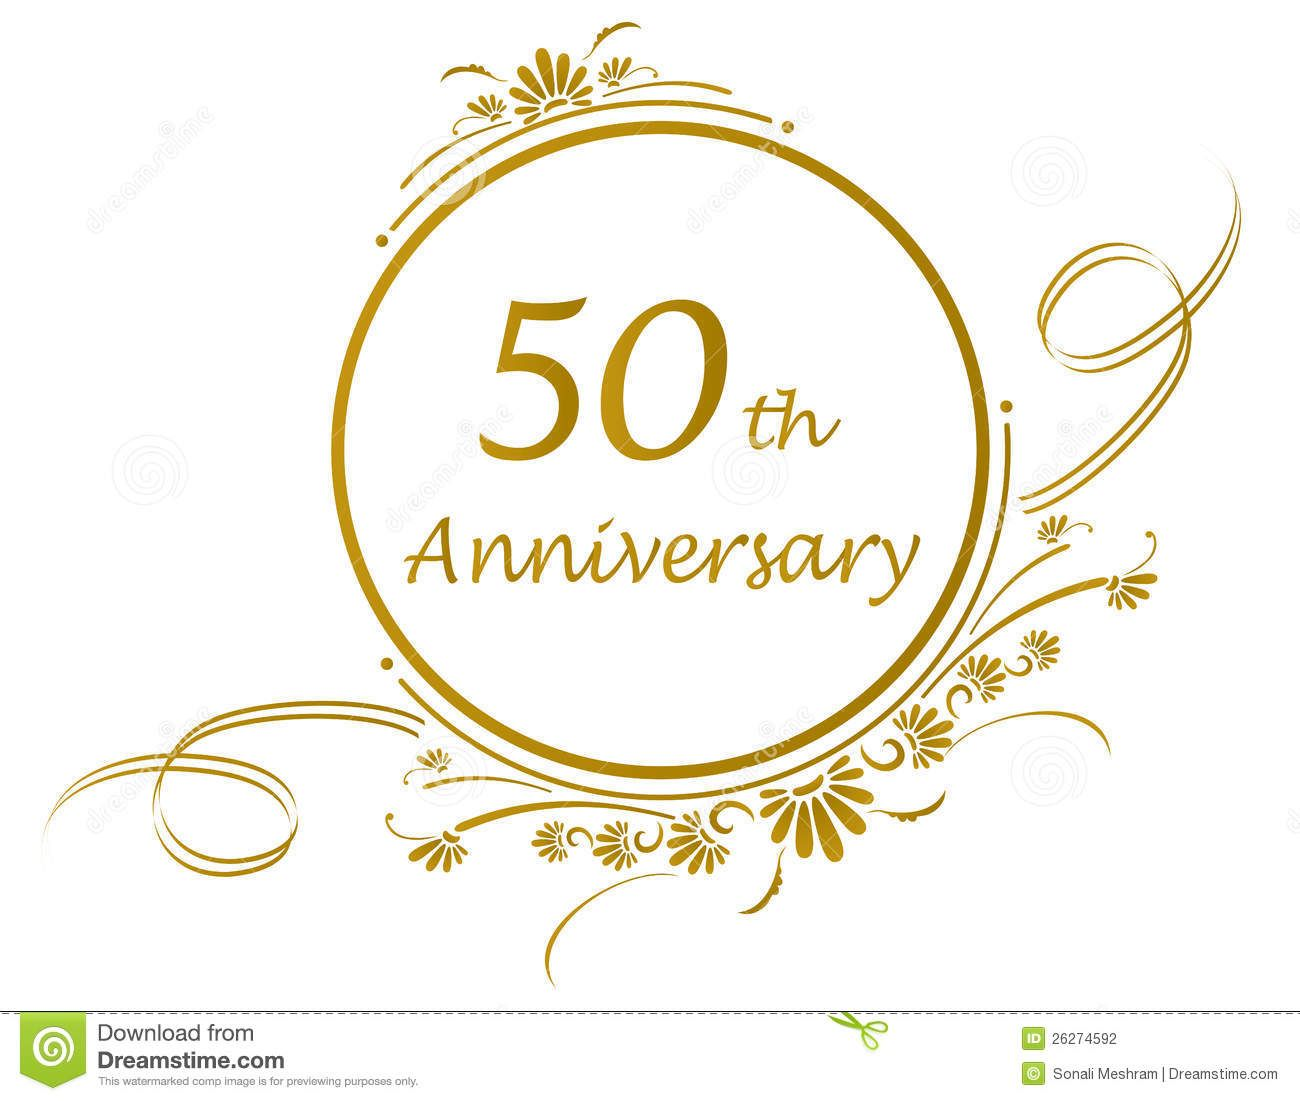 50 anniversary  50th anniversary design  PARTY  Pinterest  Anniversaries 50th and Cuttings